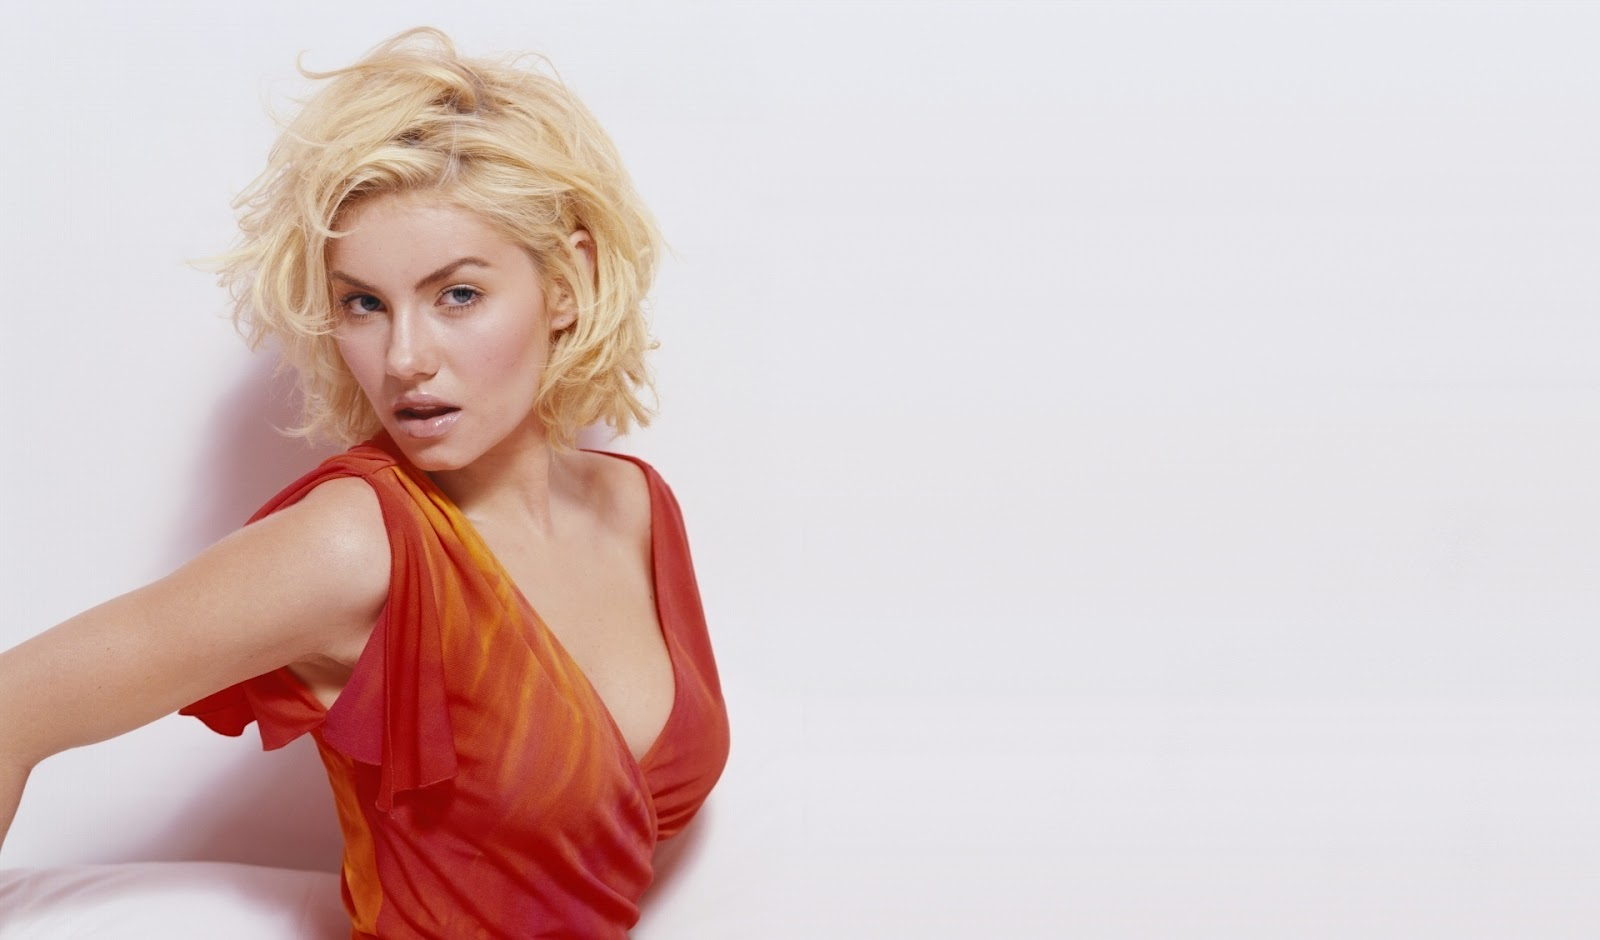 Elisha Cuthbert Hd Wallpapers: Sexy Elisha Cuthbert Full HD Wallpapers 1080p